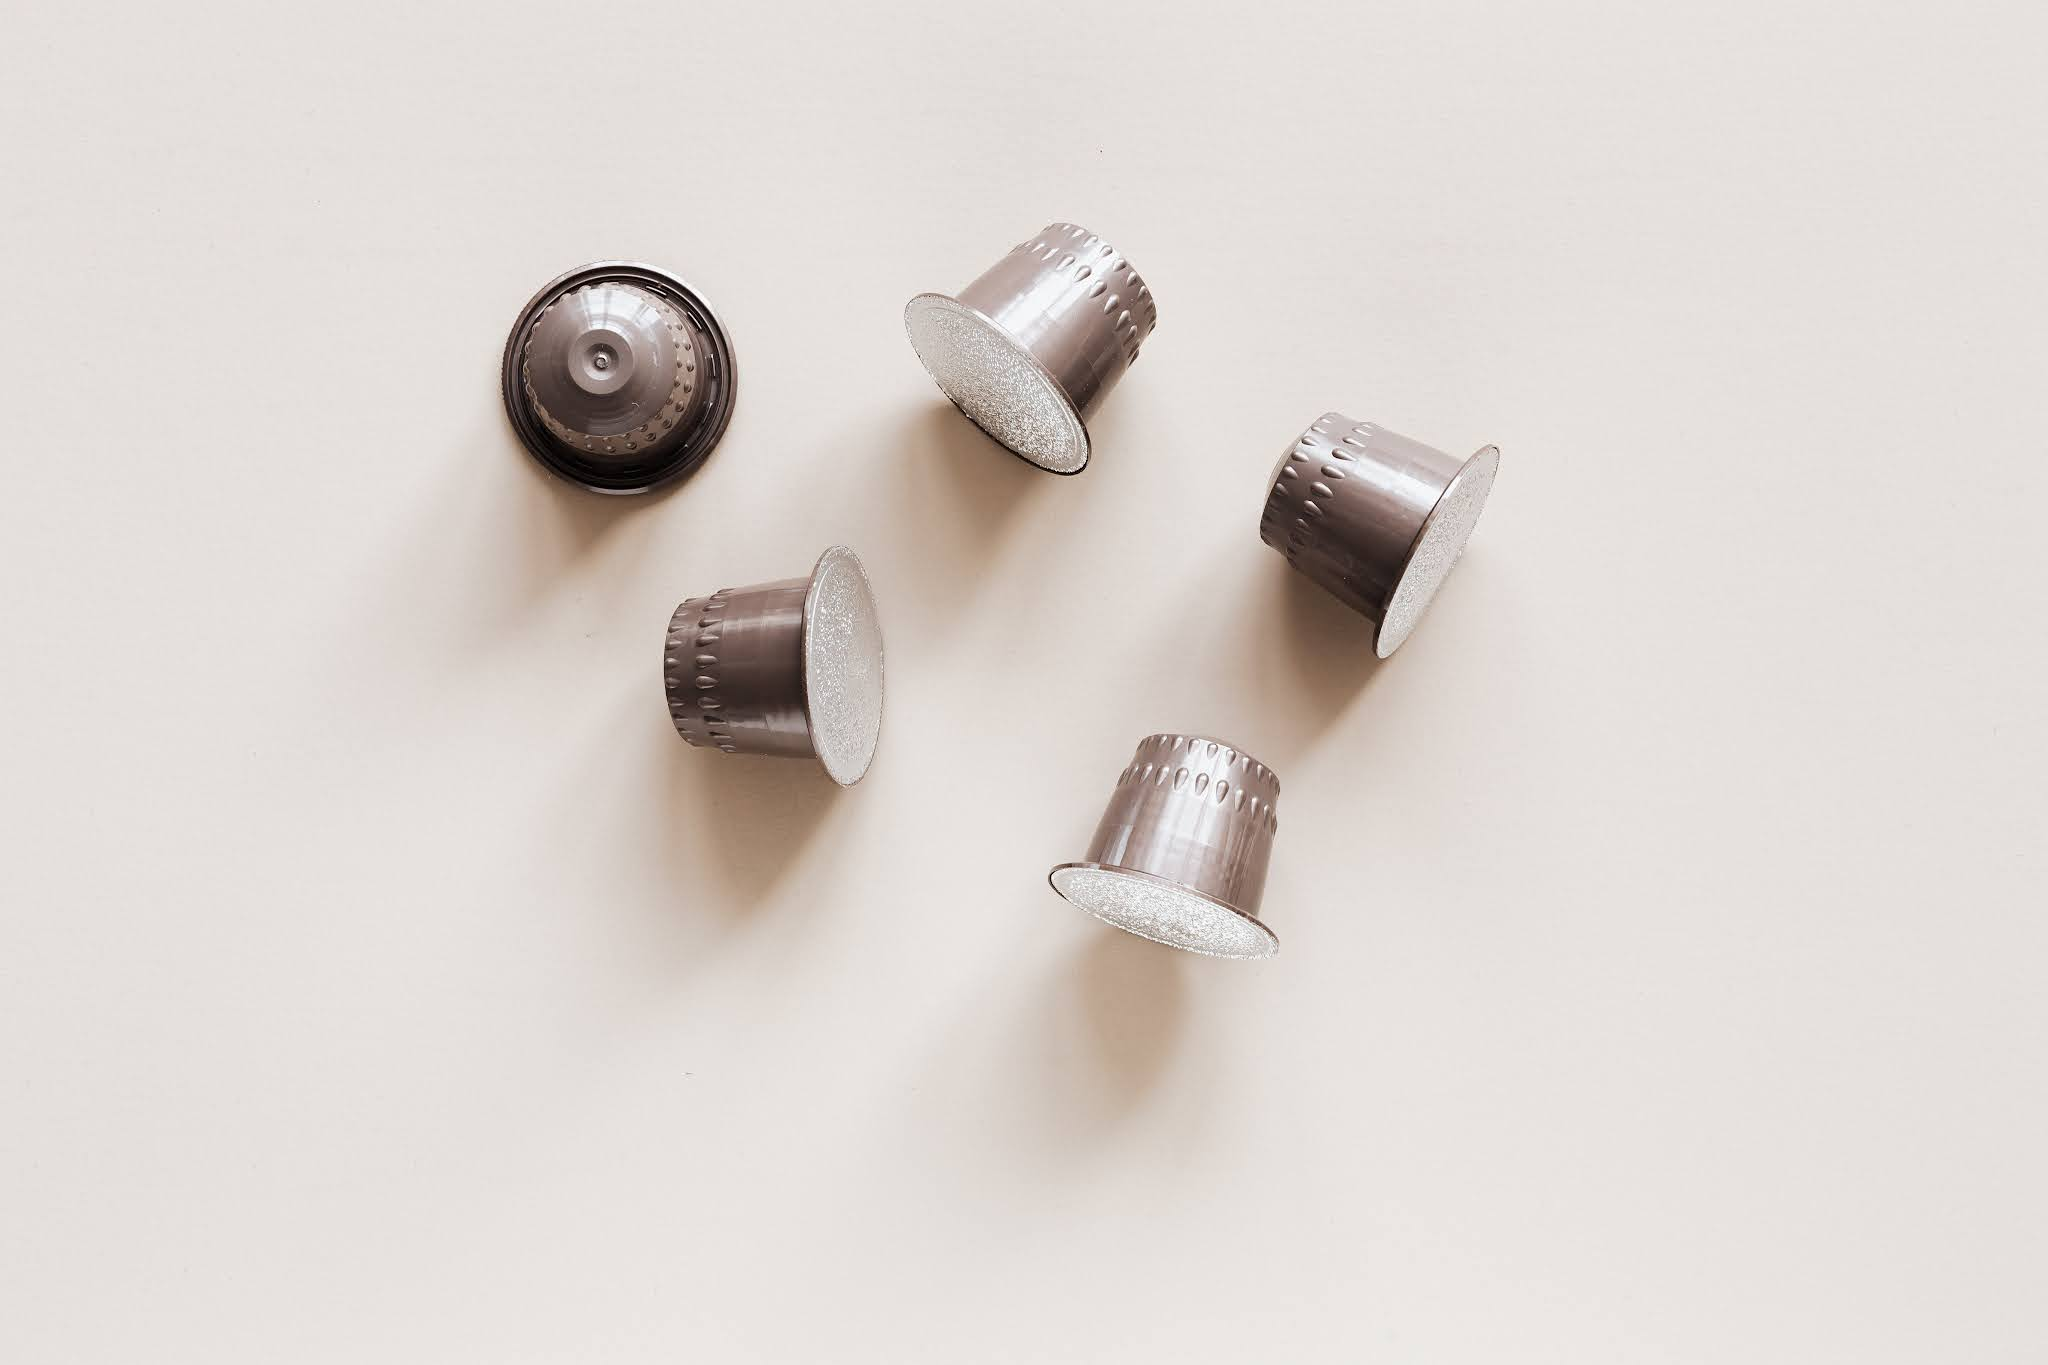 stock image of coffee pods in plain silver packaging